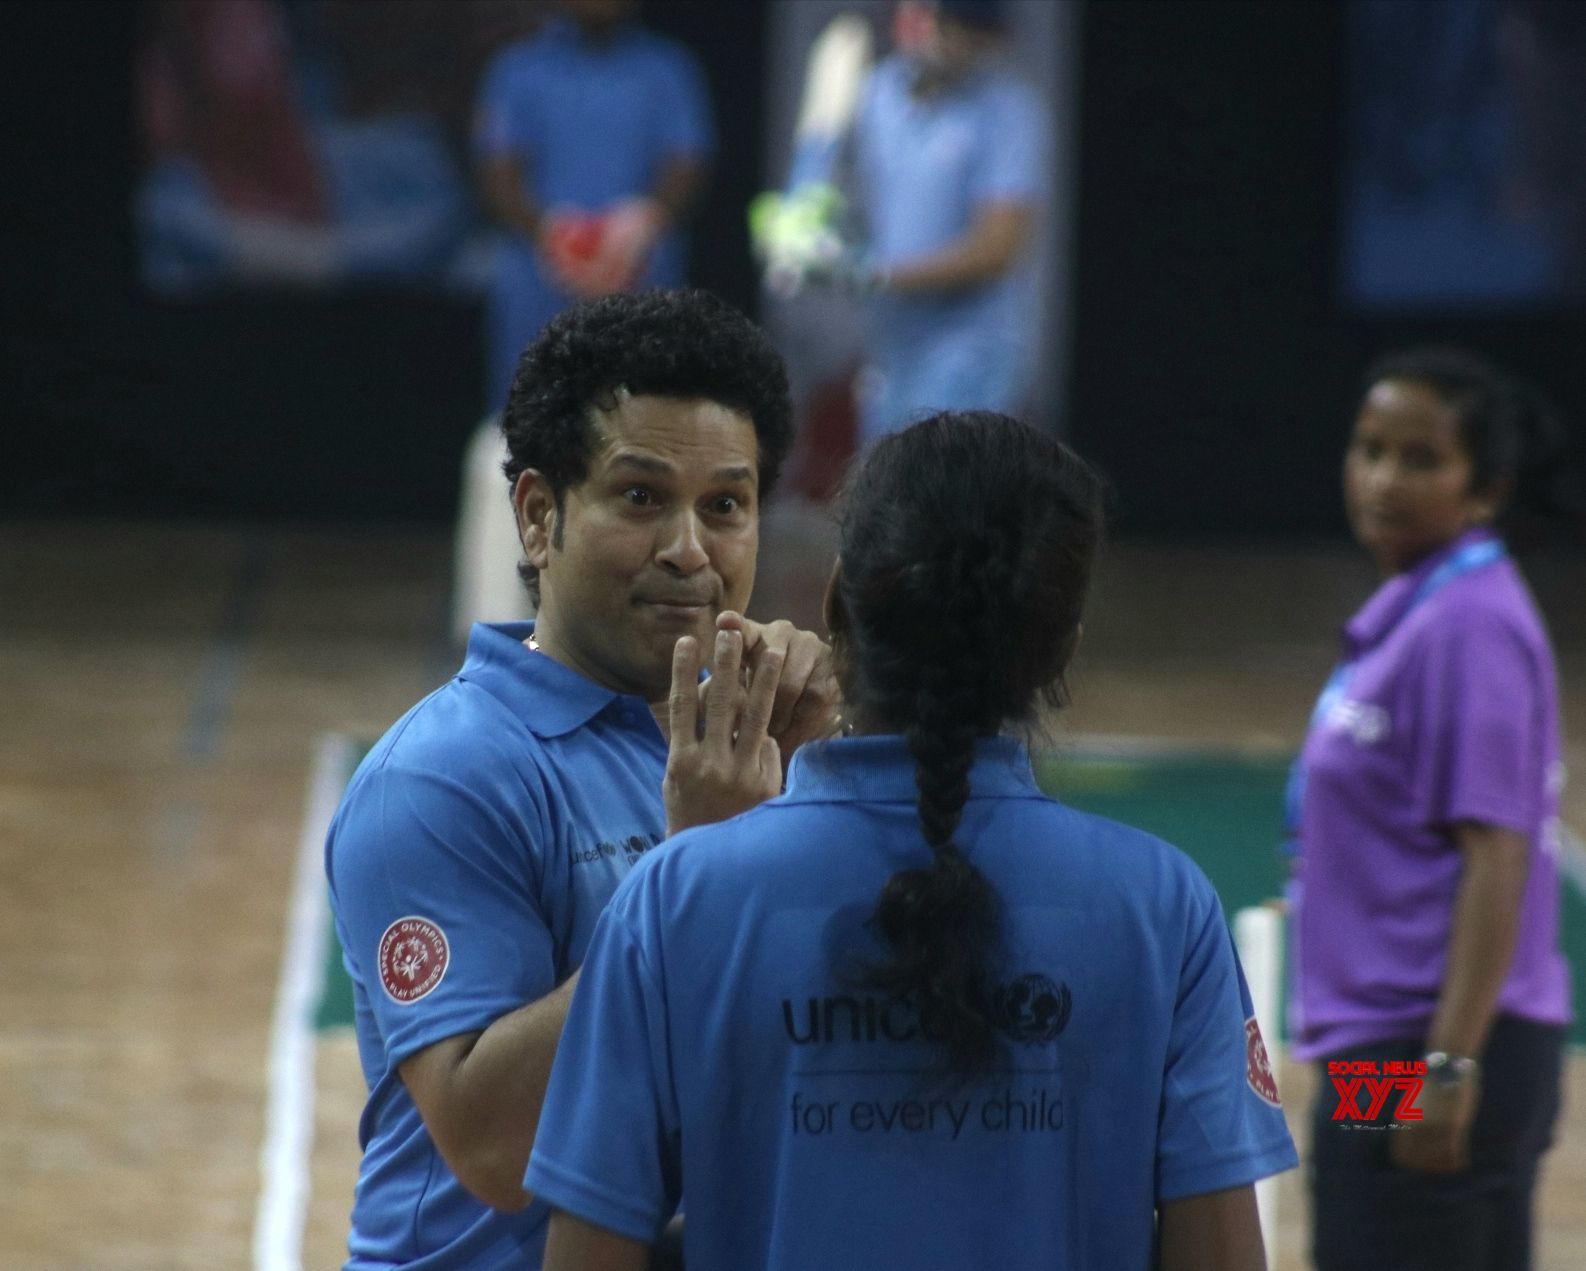 new delhi: sachin tendulkar plays cricket with children - social